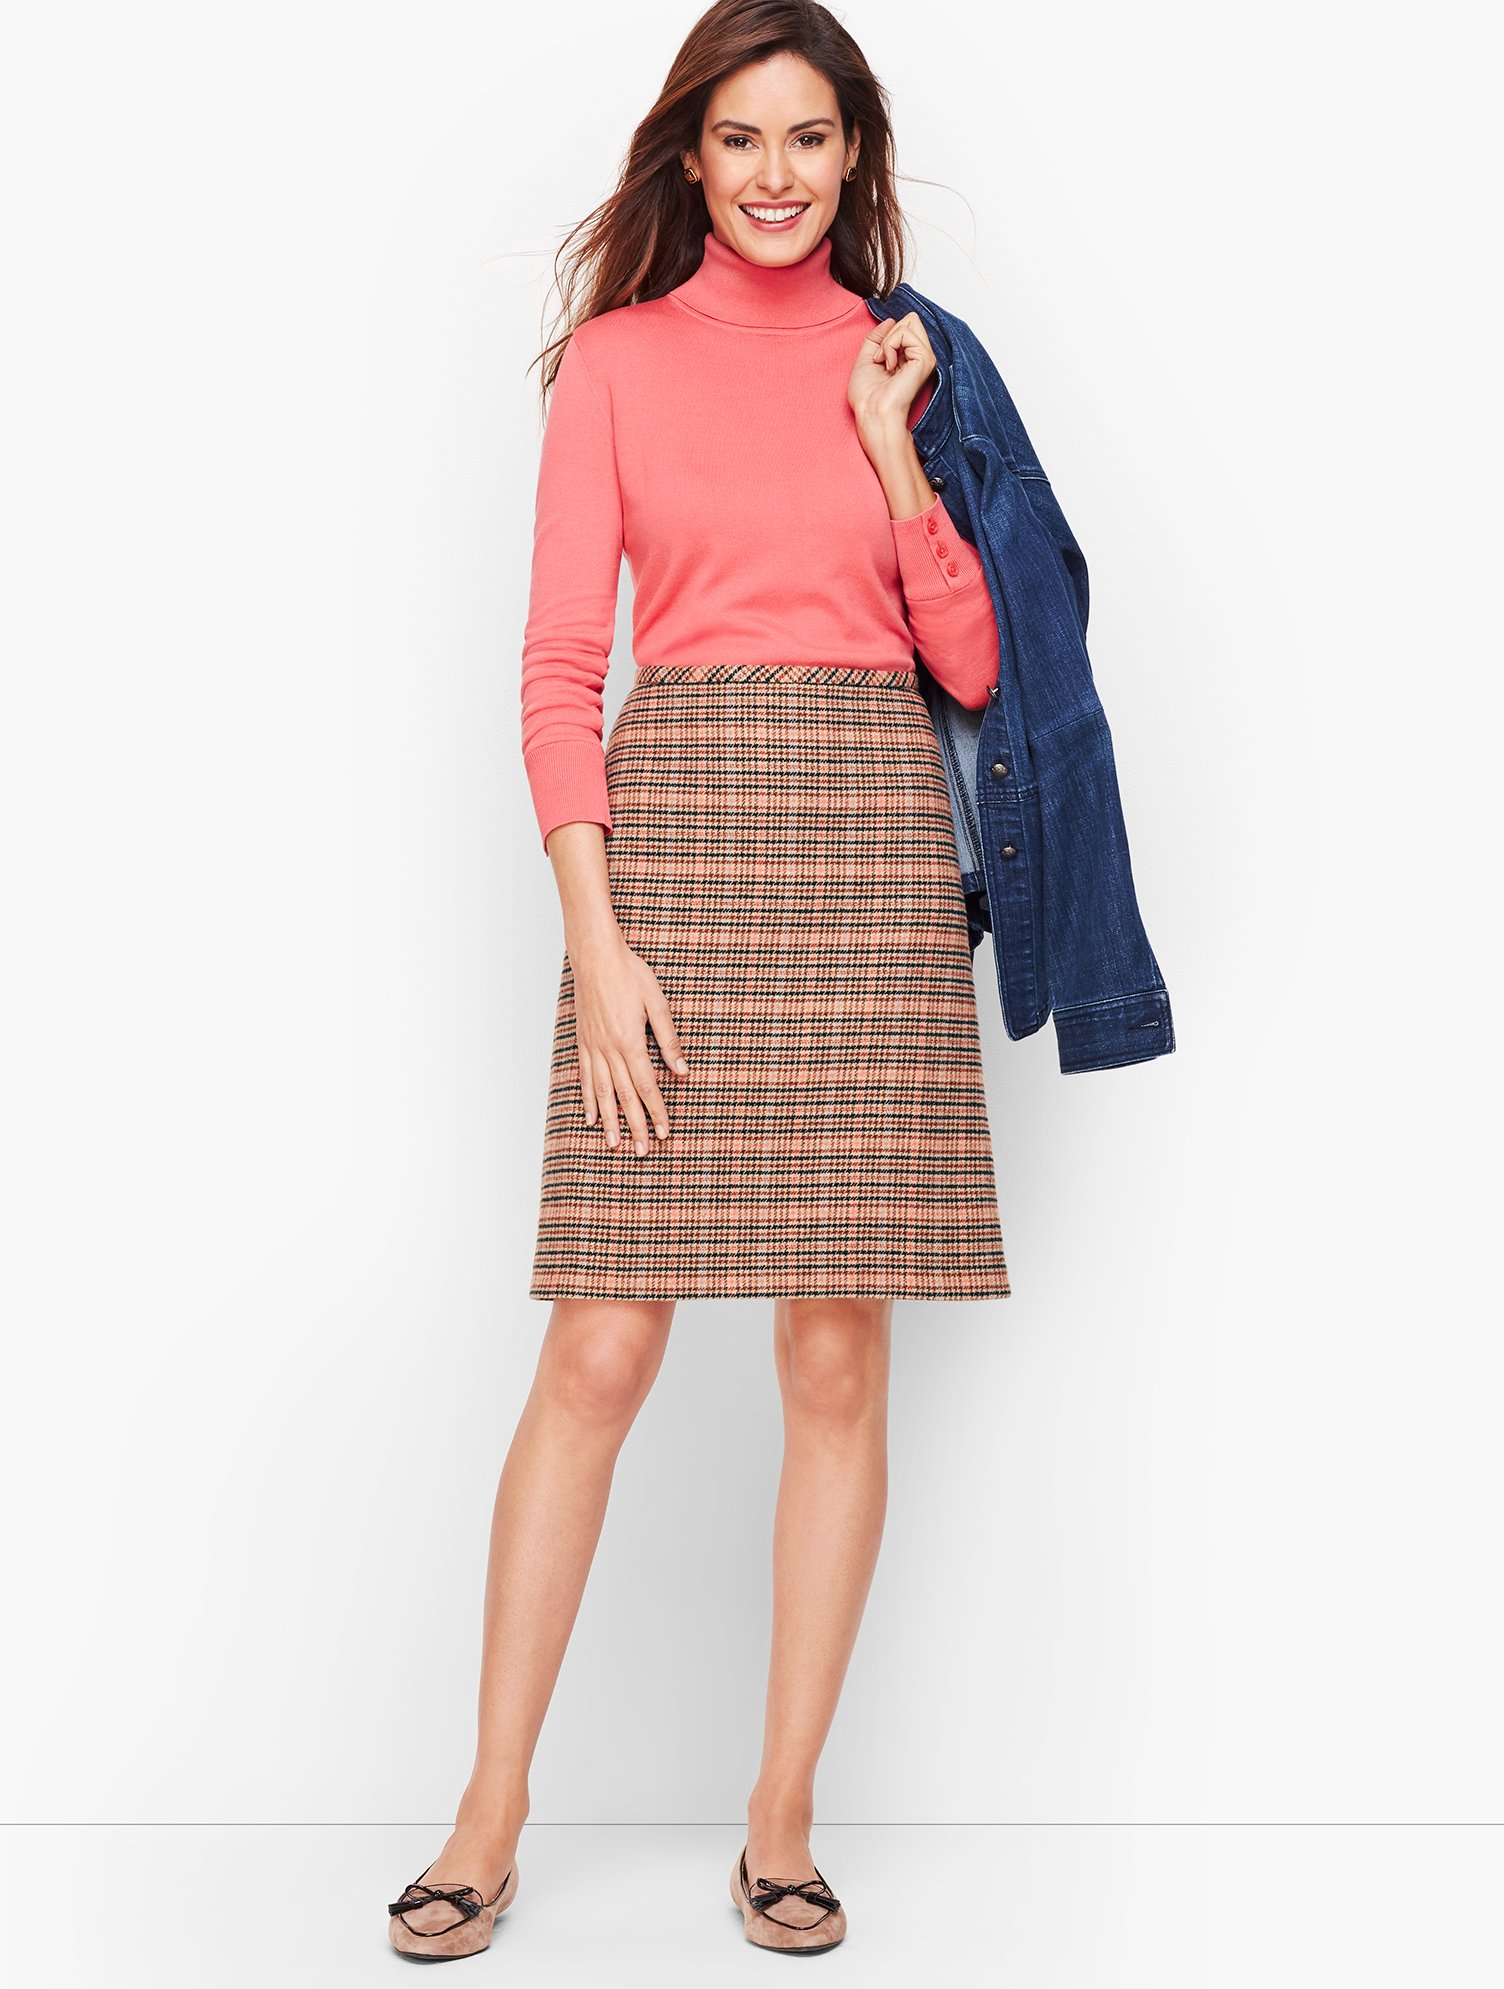 Retro Skirts | Vintage, Pencil, Circle, & Plus Sizes Plaid Wool A-Line Skirt - Spiced Coral - 12 Talbots $69.99 AT vintagedancer.com